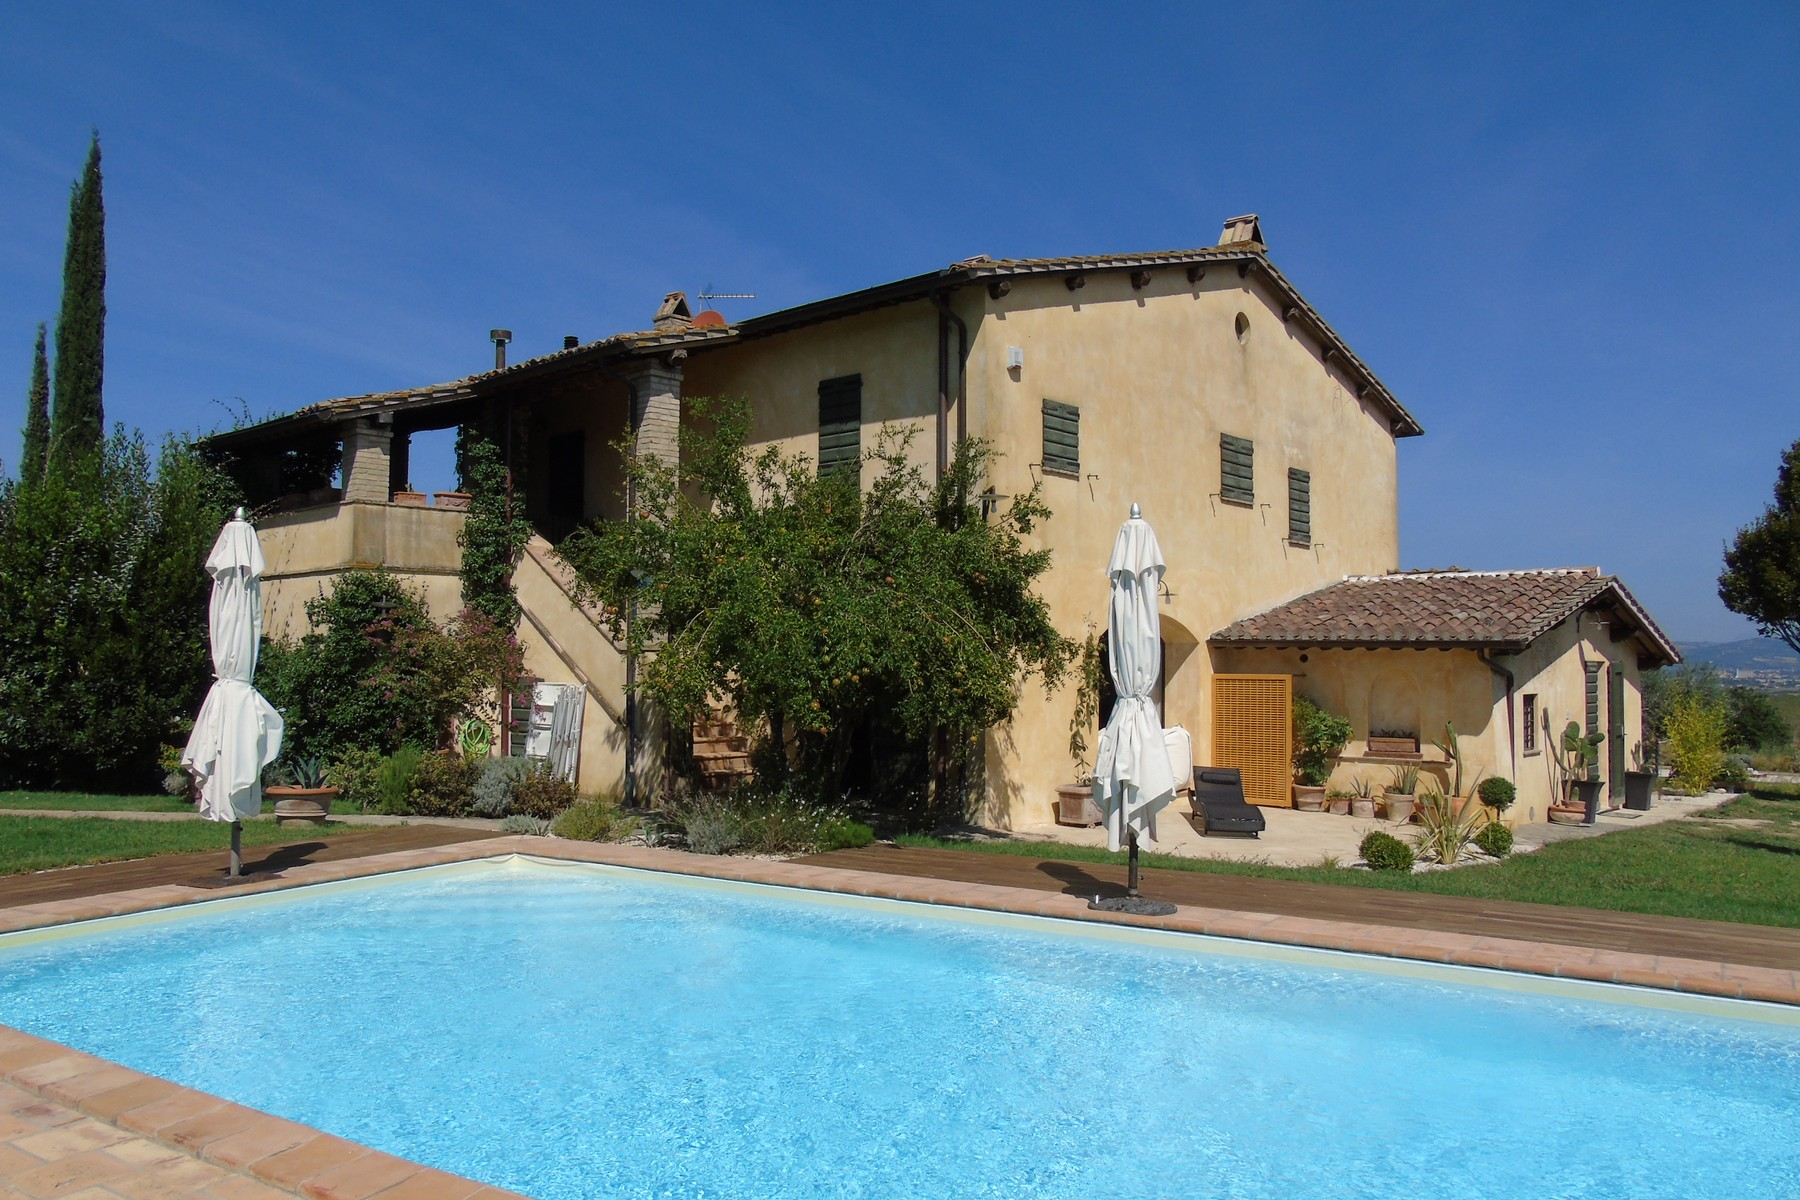 Townhouse for Sale at Lovely farmhouse with panaromic views of Assisi Via dei Colli Bettona Perugia, 06084 Italy